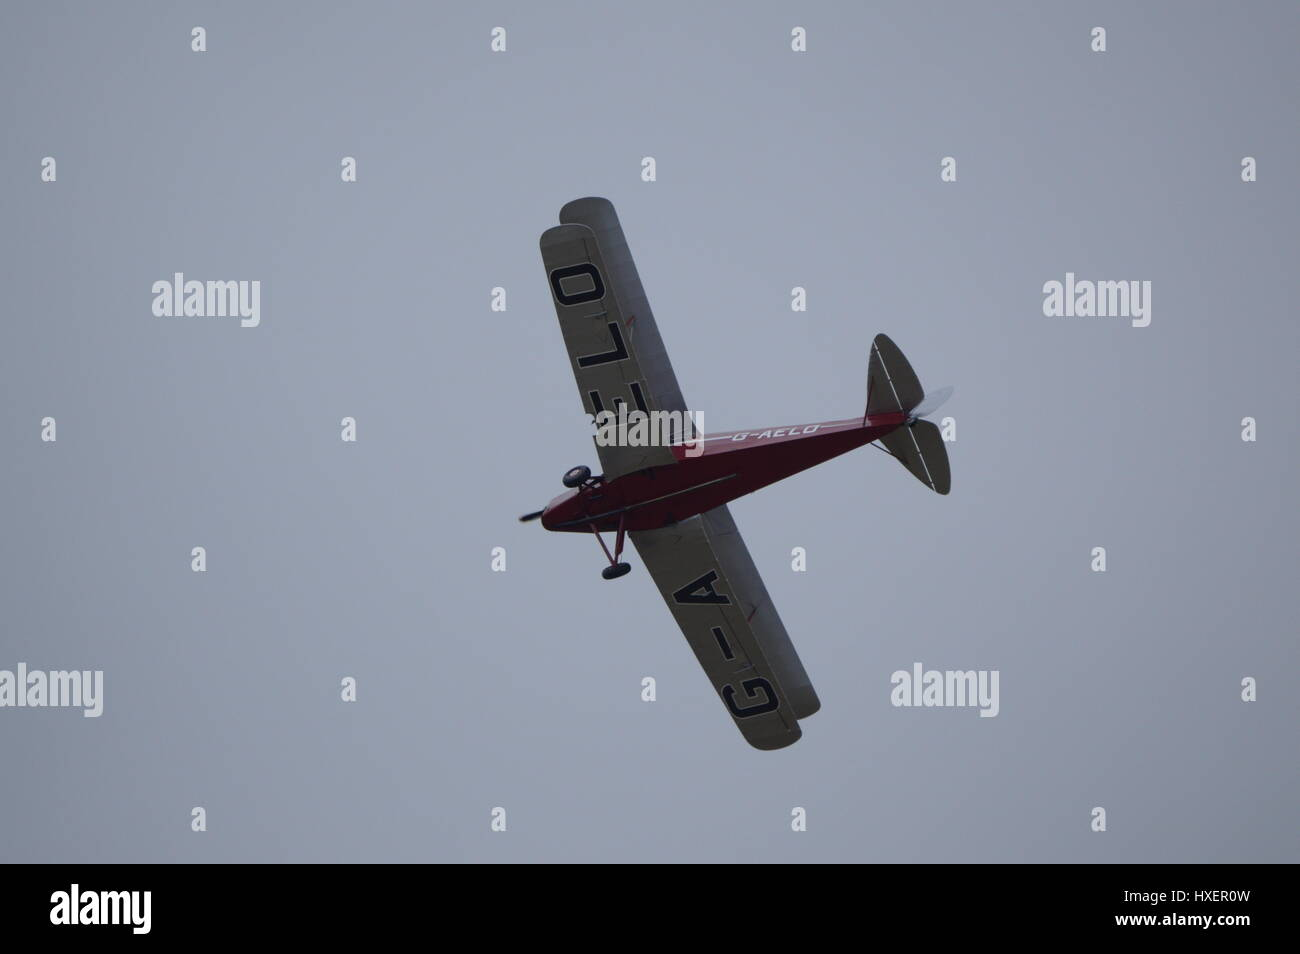 Light aircraft flying over Stow Maries Aerodrome - Stock Image